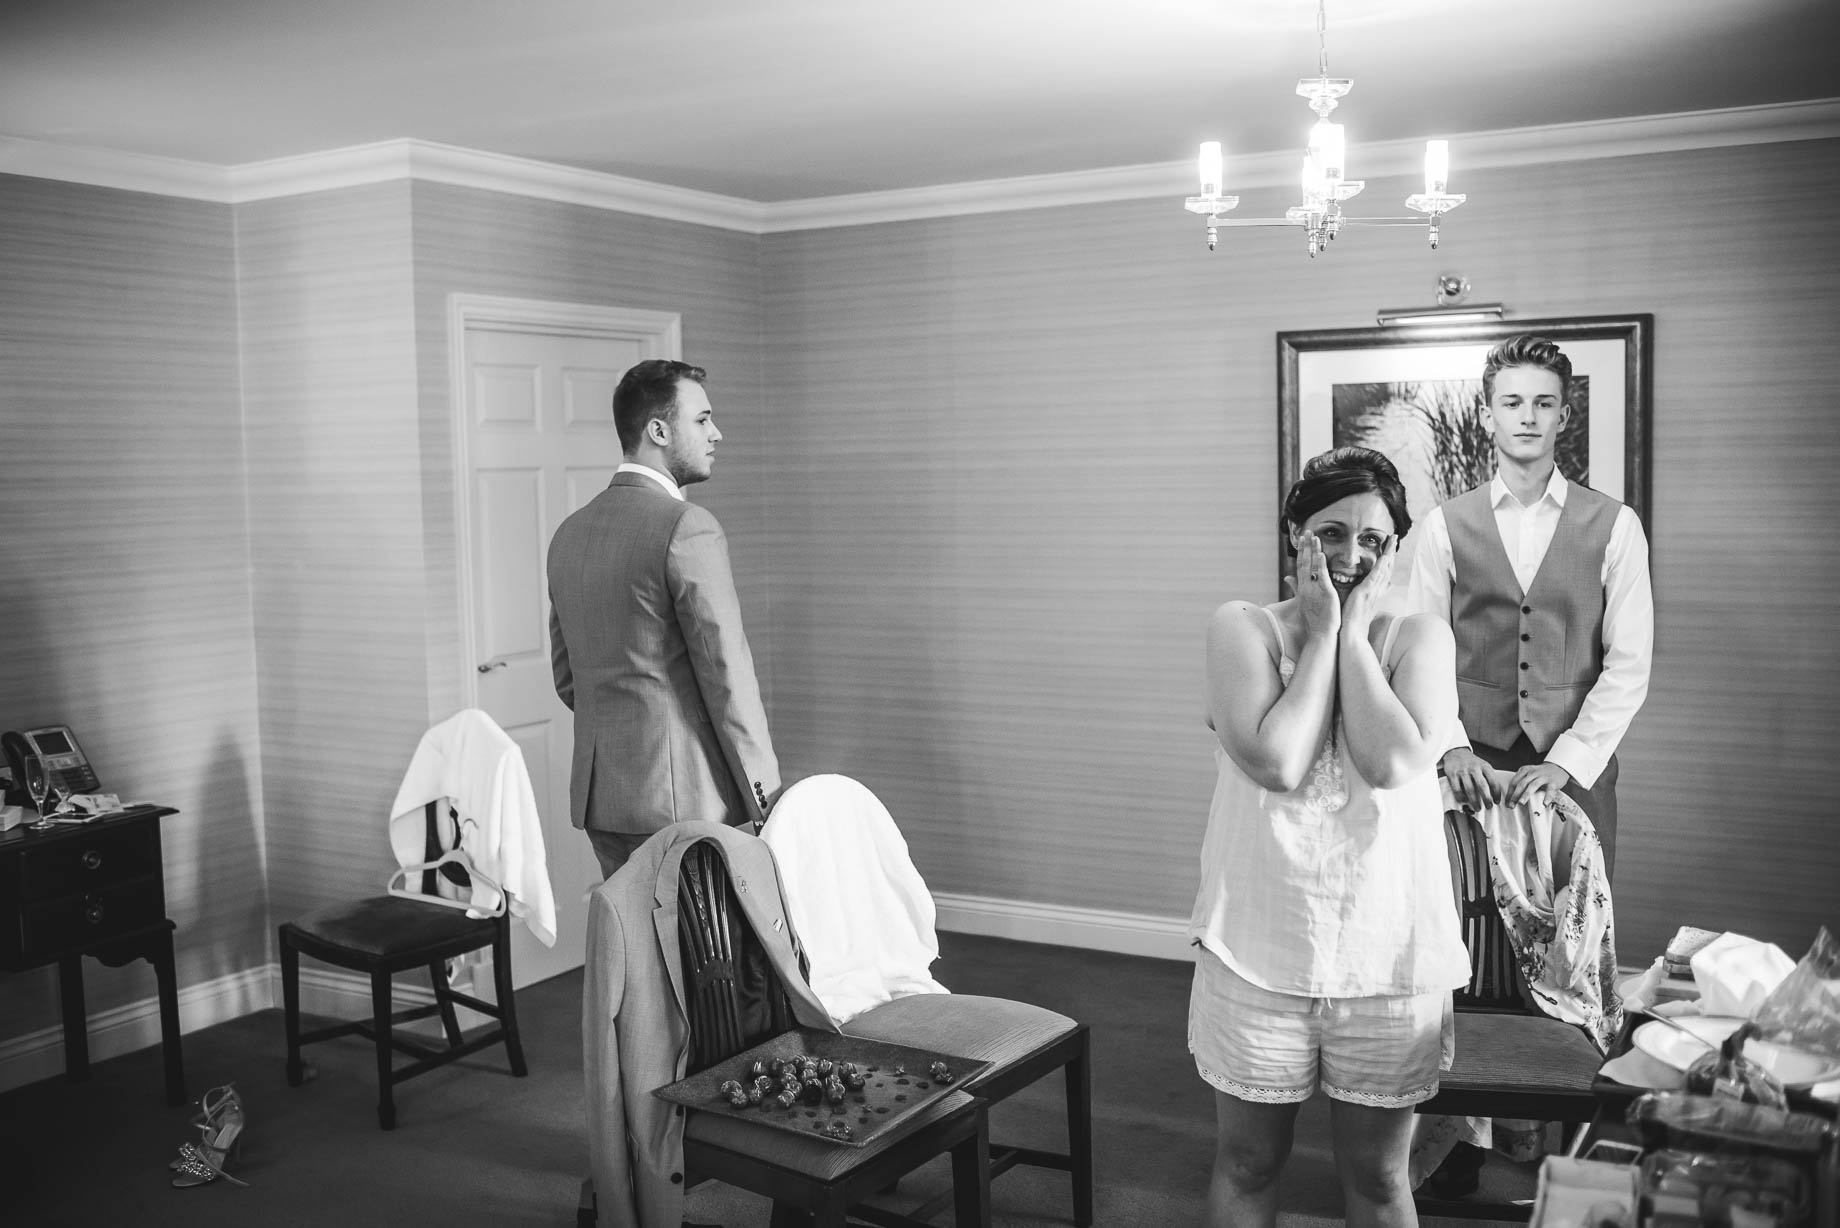 Luton Hoo wedding photography by Guy Collier Photography - Lauren and Gem (30 of 178)